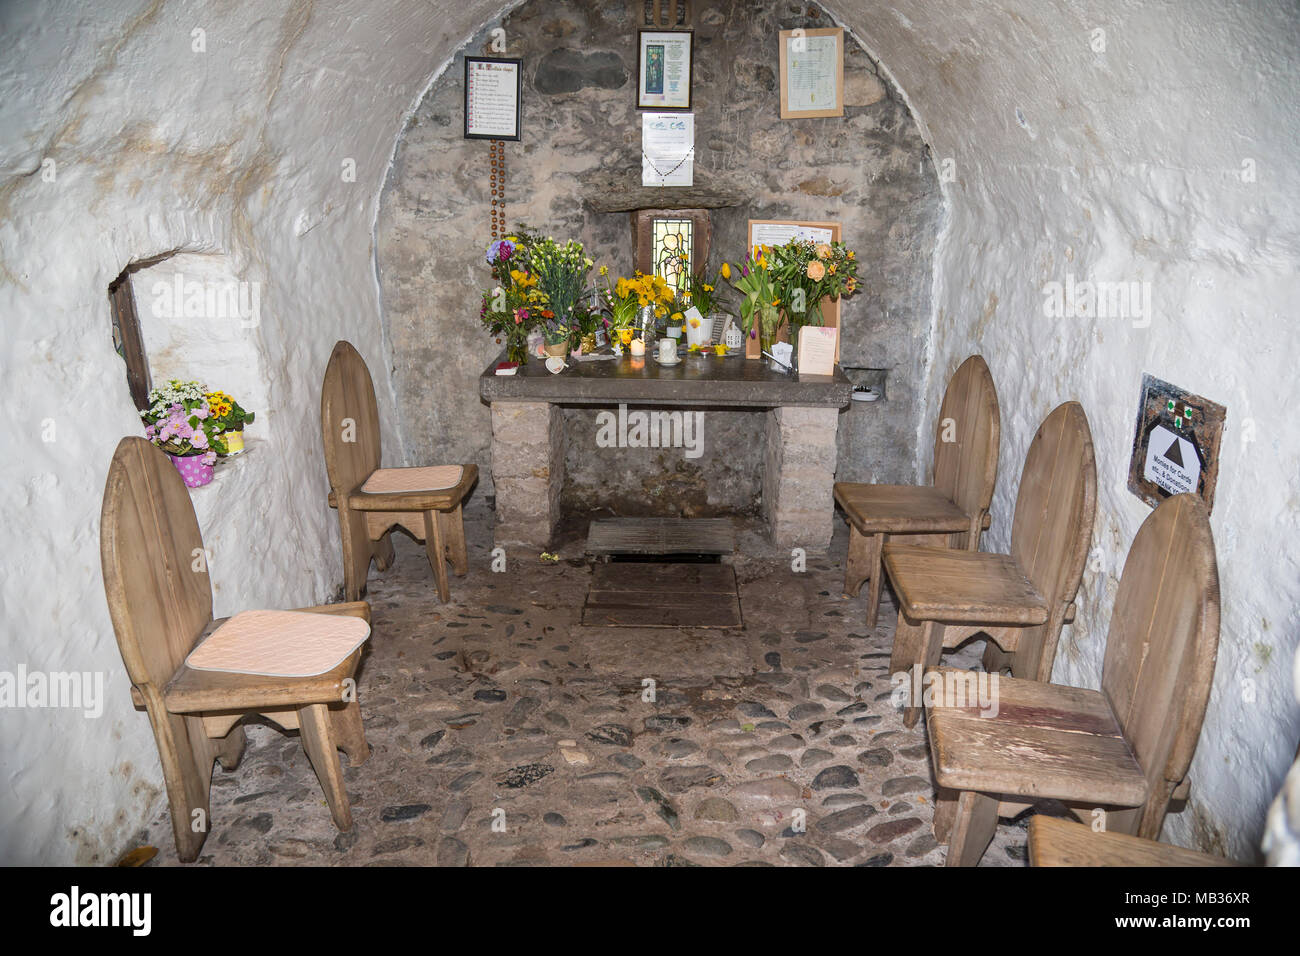 View inside the chapel of Saint Trillo, the smallest chapel in Britain at Rhos on Sea North Wales - Stock Image